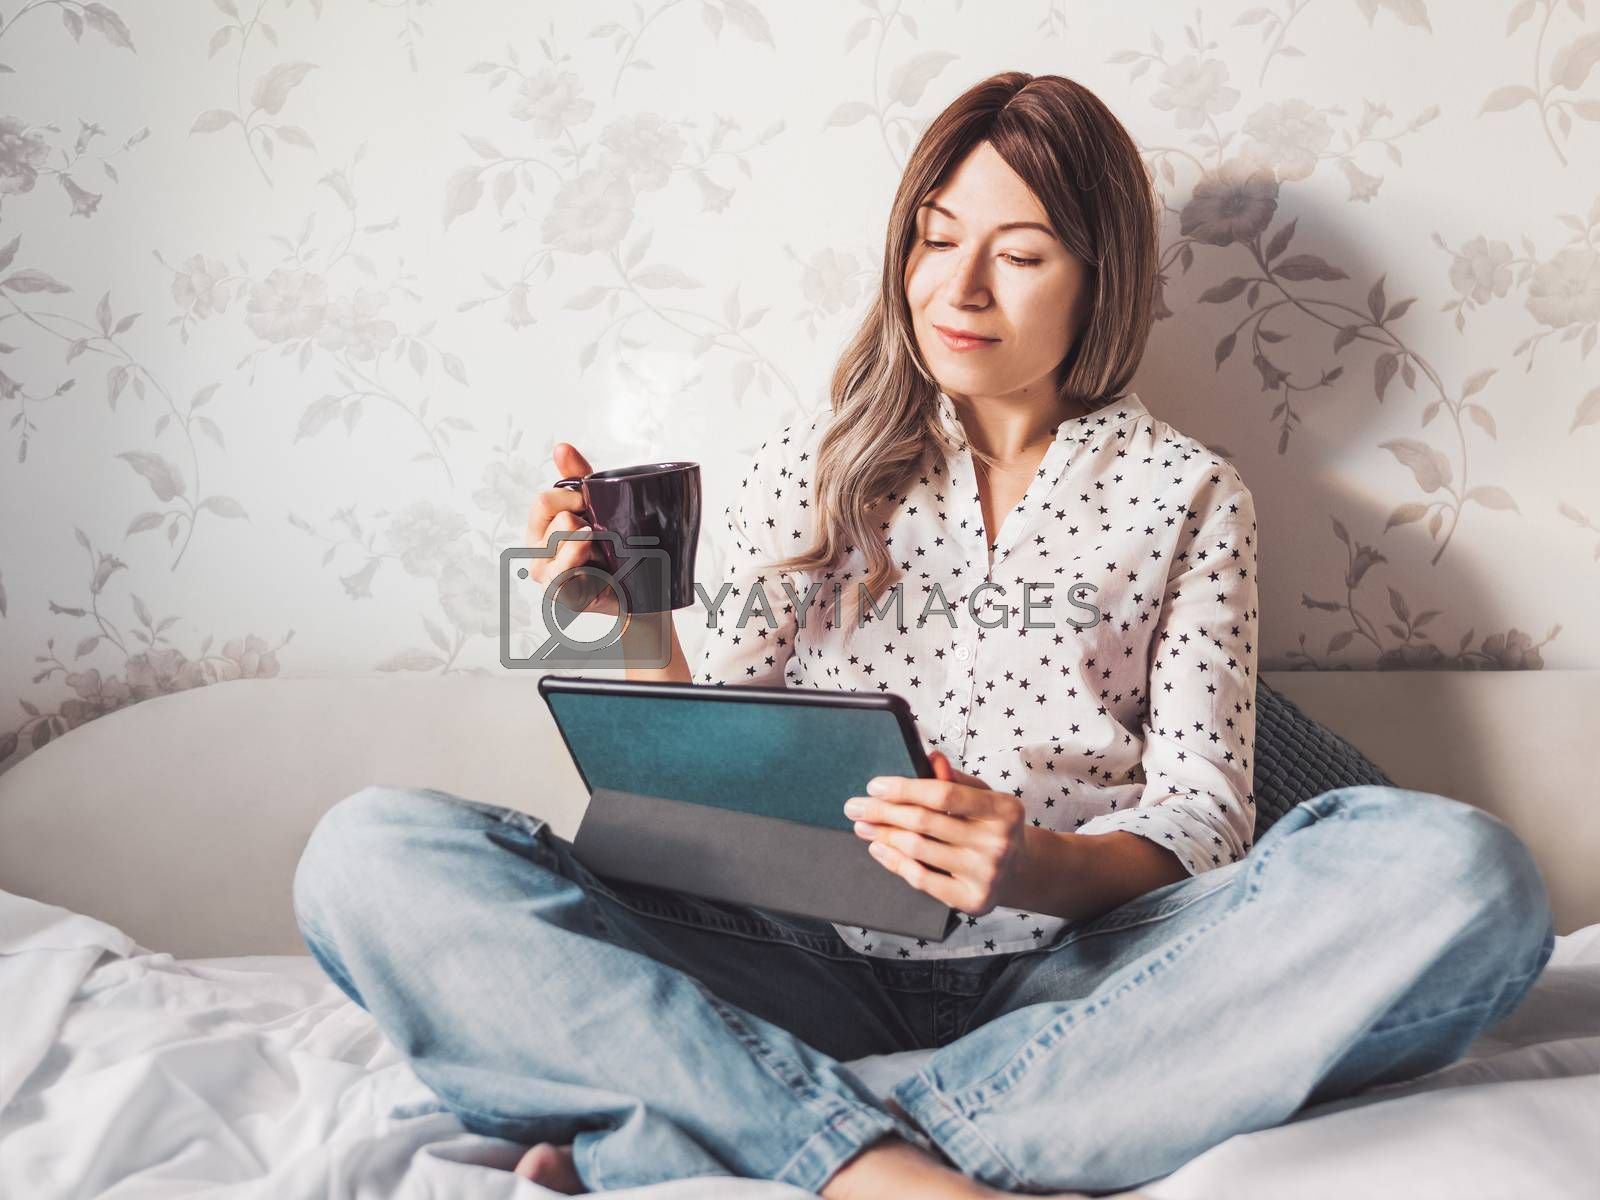 Woman sits on bed with tablet PC and cup of hot coffee. She watches online TV series. Online video call or conference, distance learning, remote education. Self isolation during quarantine.